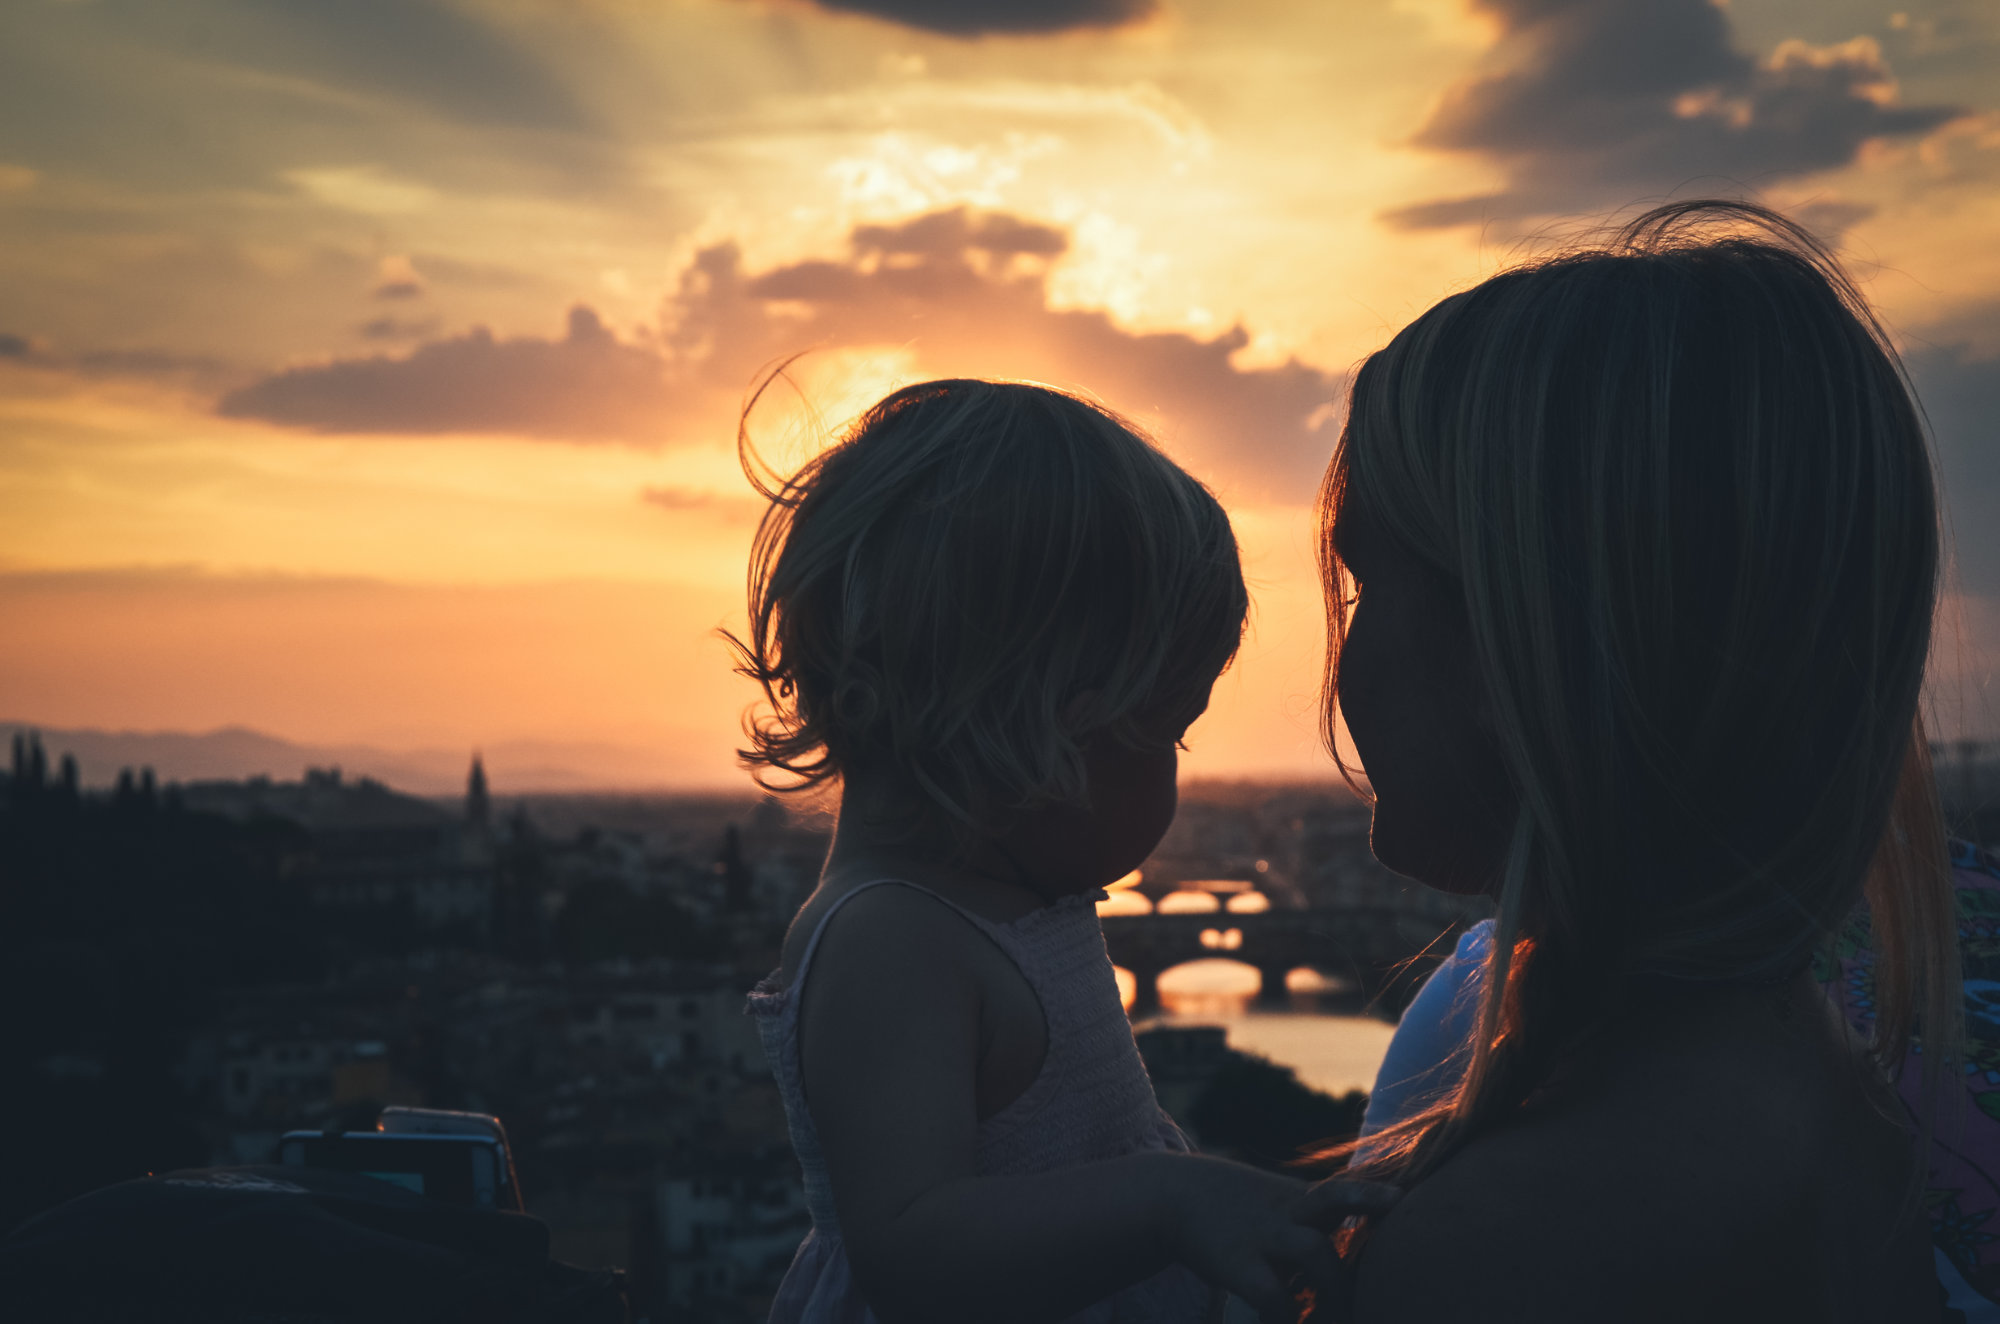 Watching the sun set over another city we fell deeply in love with.